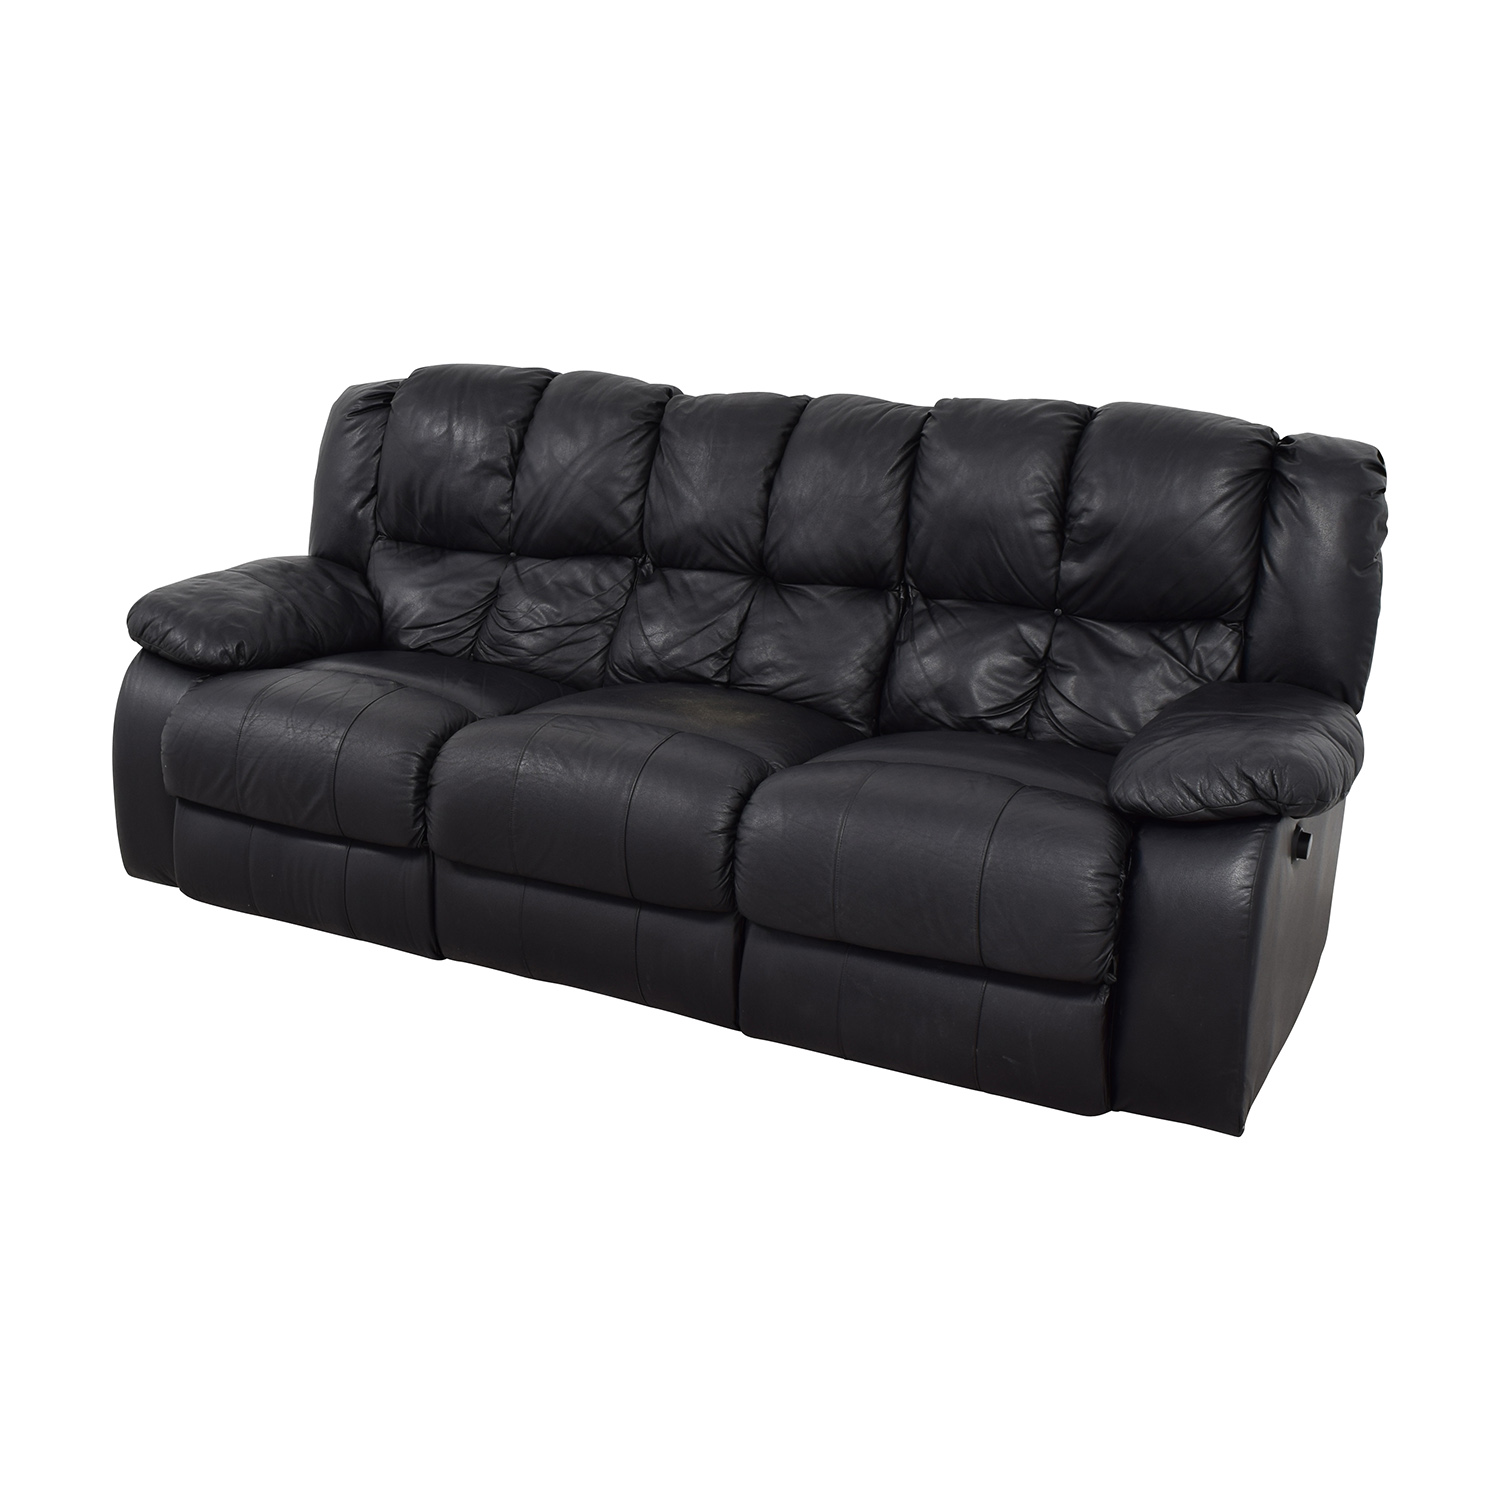 Raymour and Flanigan Raymour & Flanigan Three-Seat Leather Sofa discount